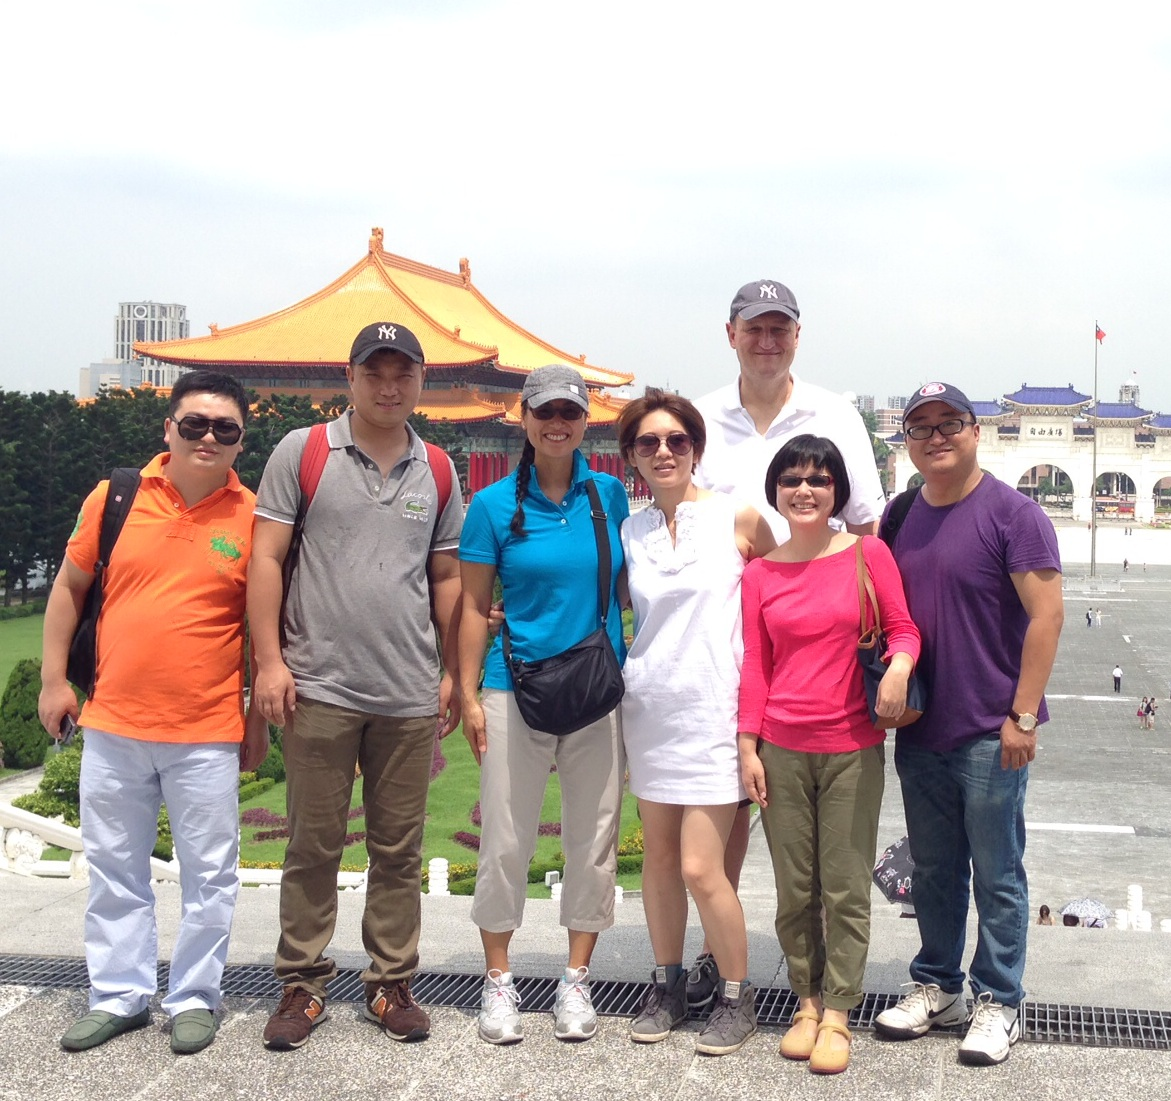 In the sweltering heat at the Chiang Kai-shek Memorial